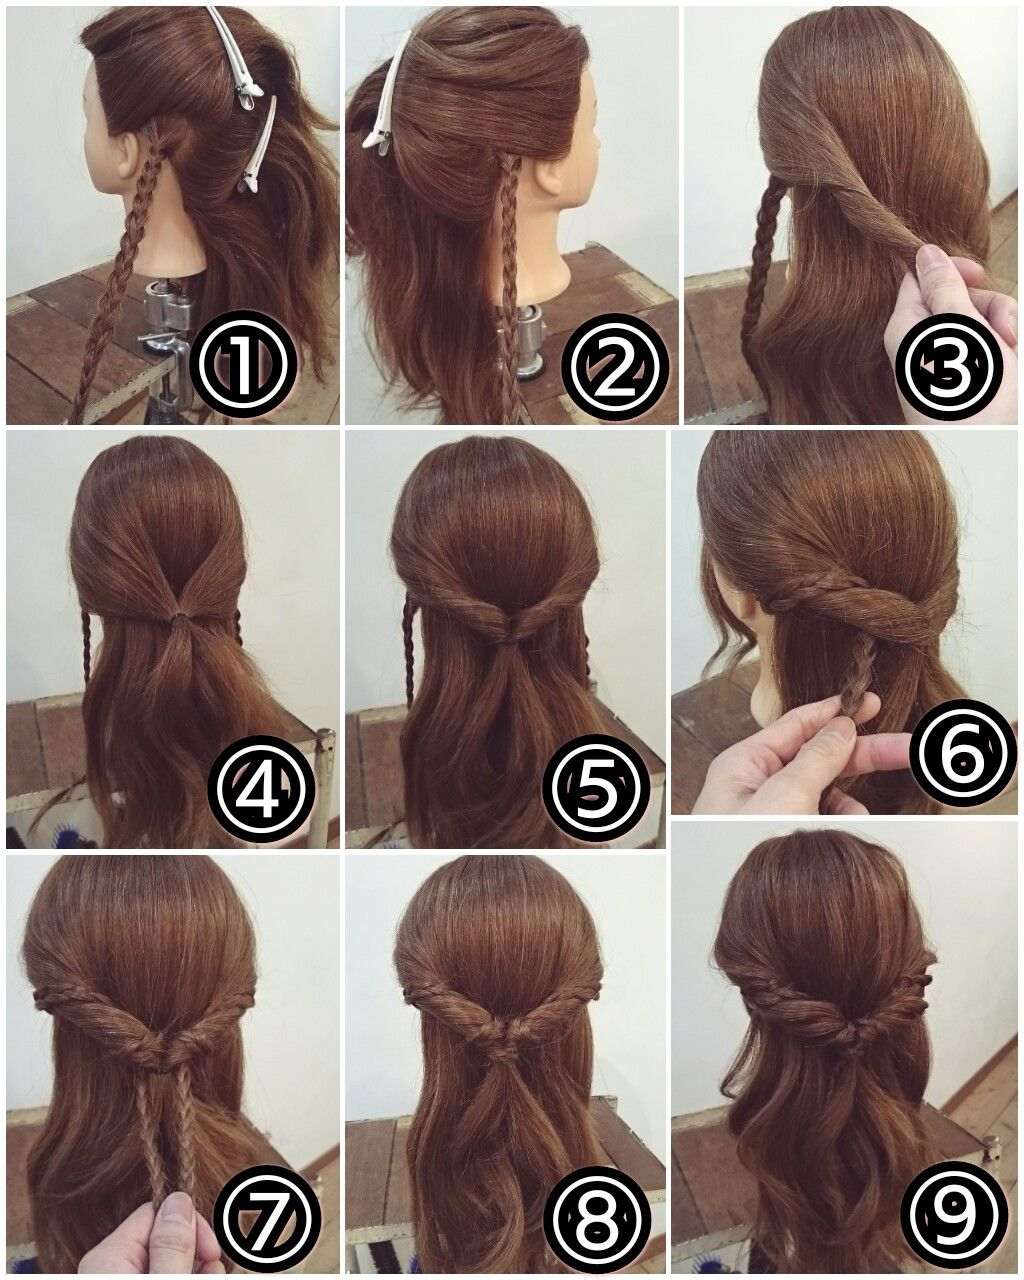 15+ Delectable Beautiful Women Hairstyles Ideas | Hair ...